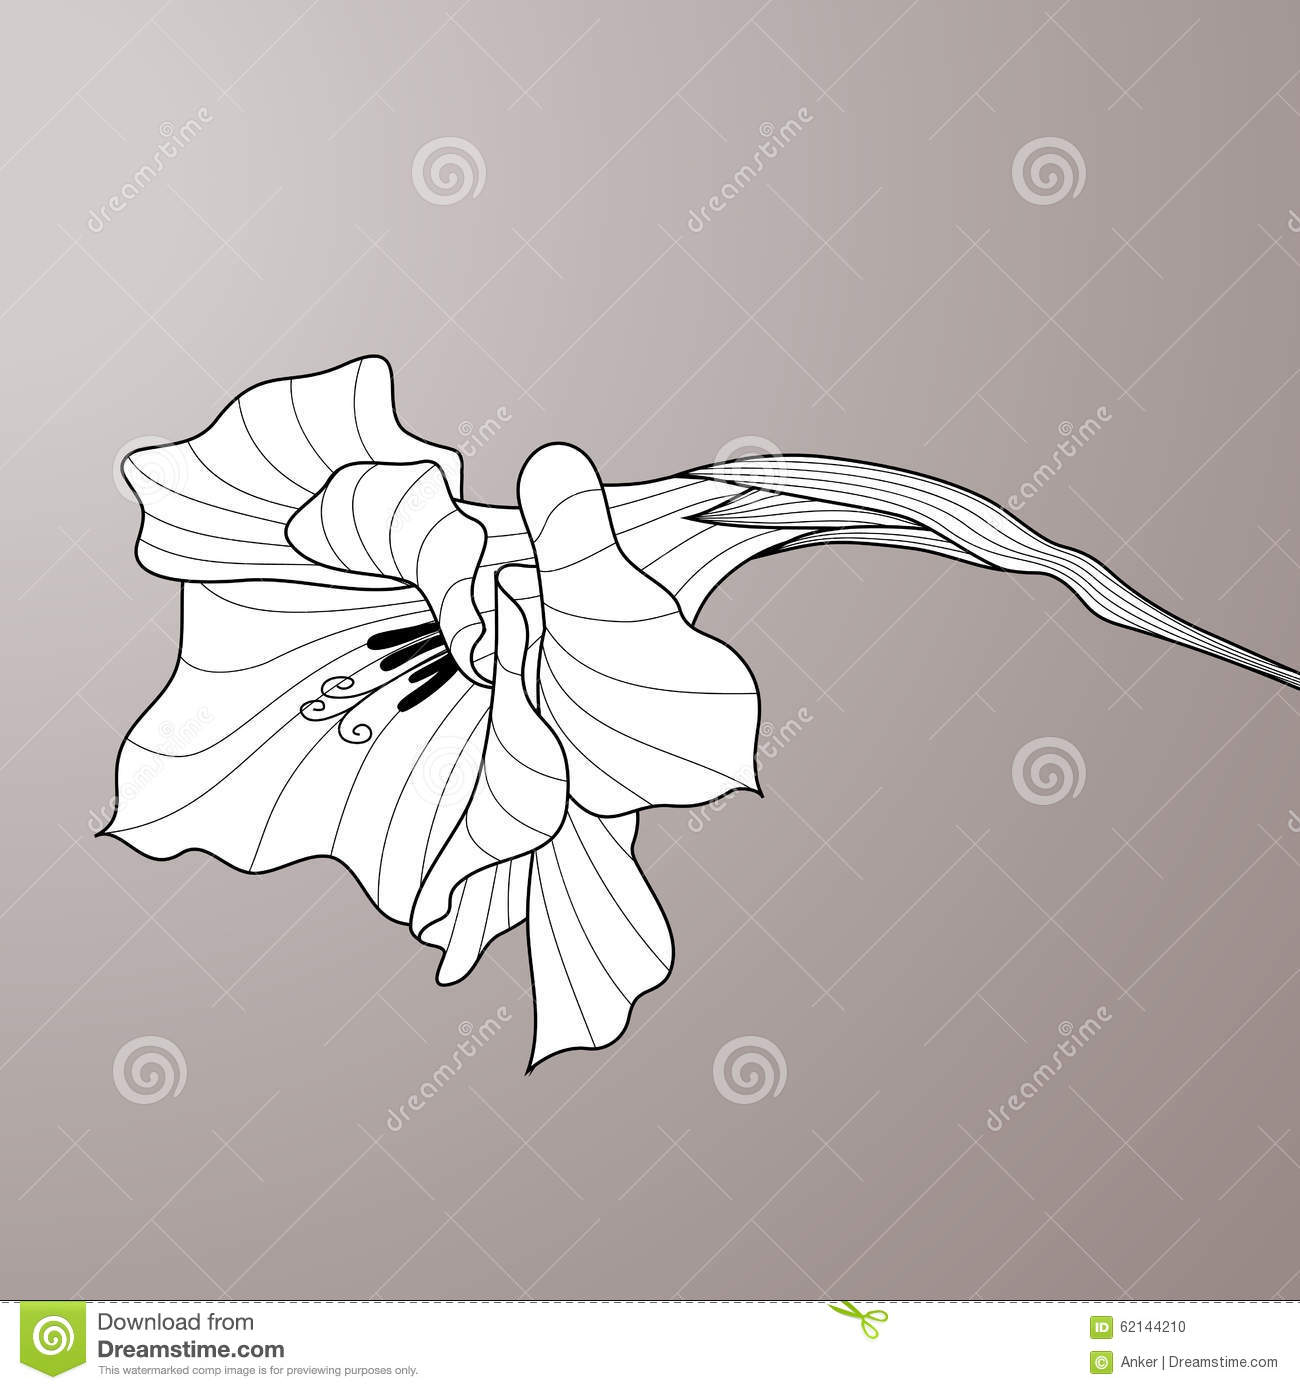 Contour Line Drawing Of A Plant : Flower gladiolus contour graphic art stock vector image